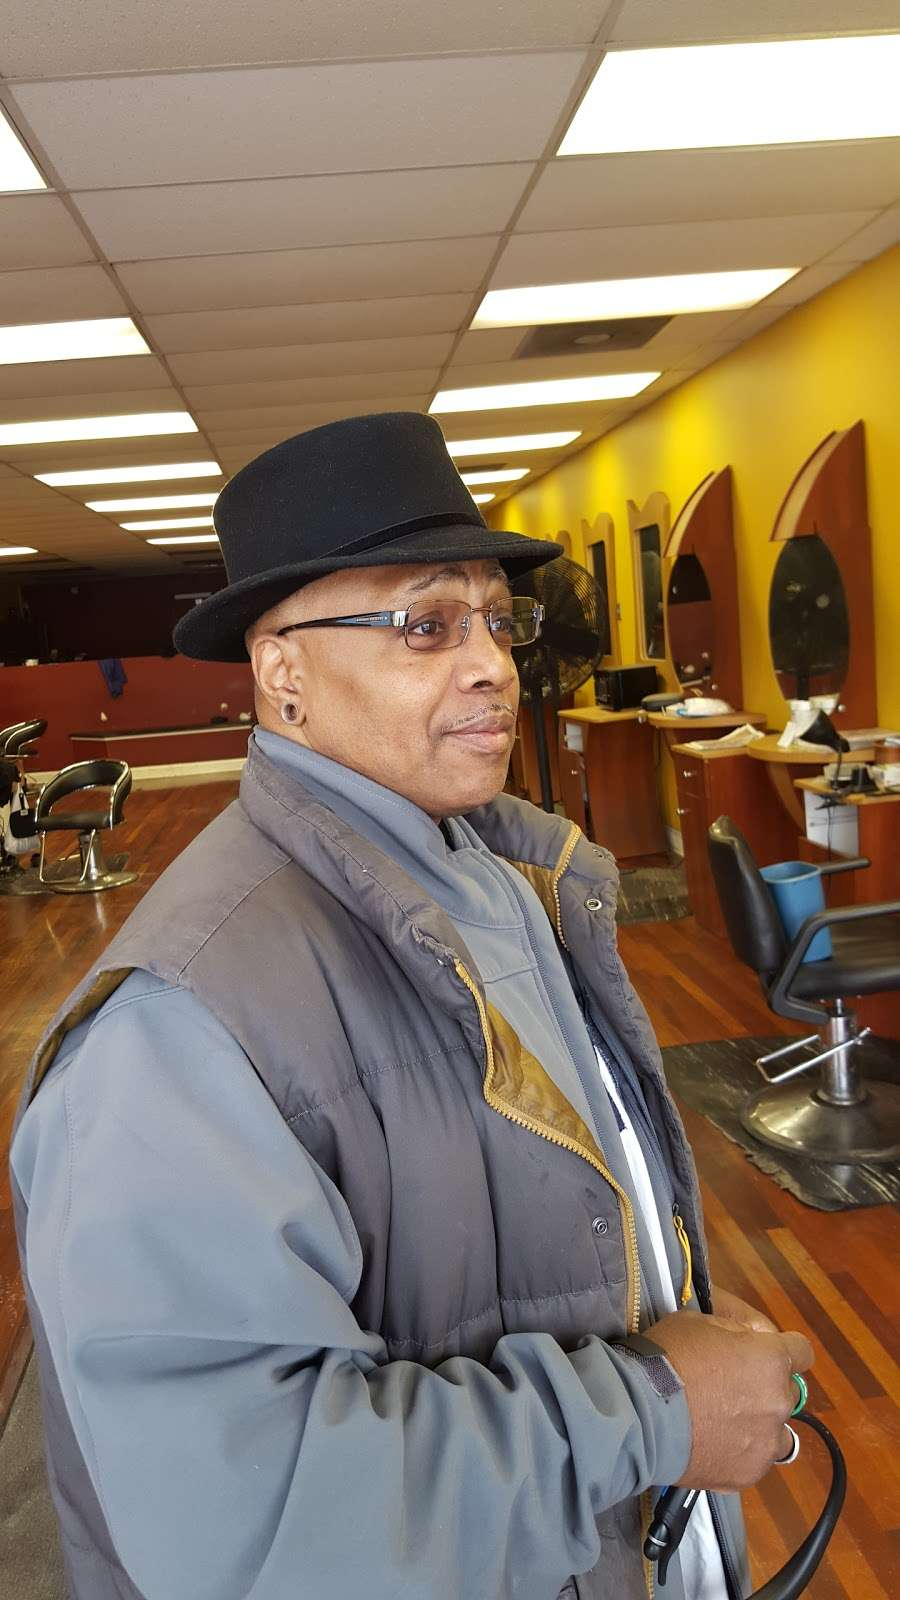 Beverly Barber Shop - hair care    Photo 1 of 1   Address: 1977 W 111th St, Chicago, IL 60643, USA   Phone: (773) 881-9960